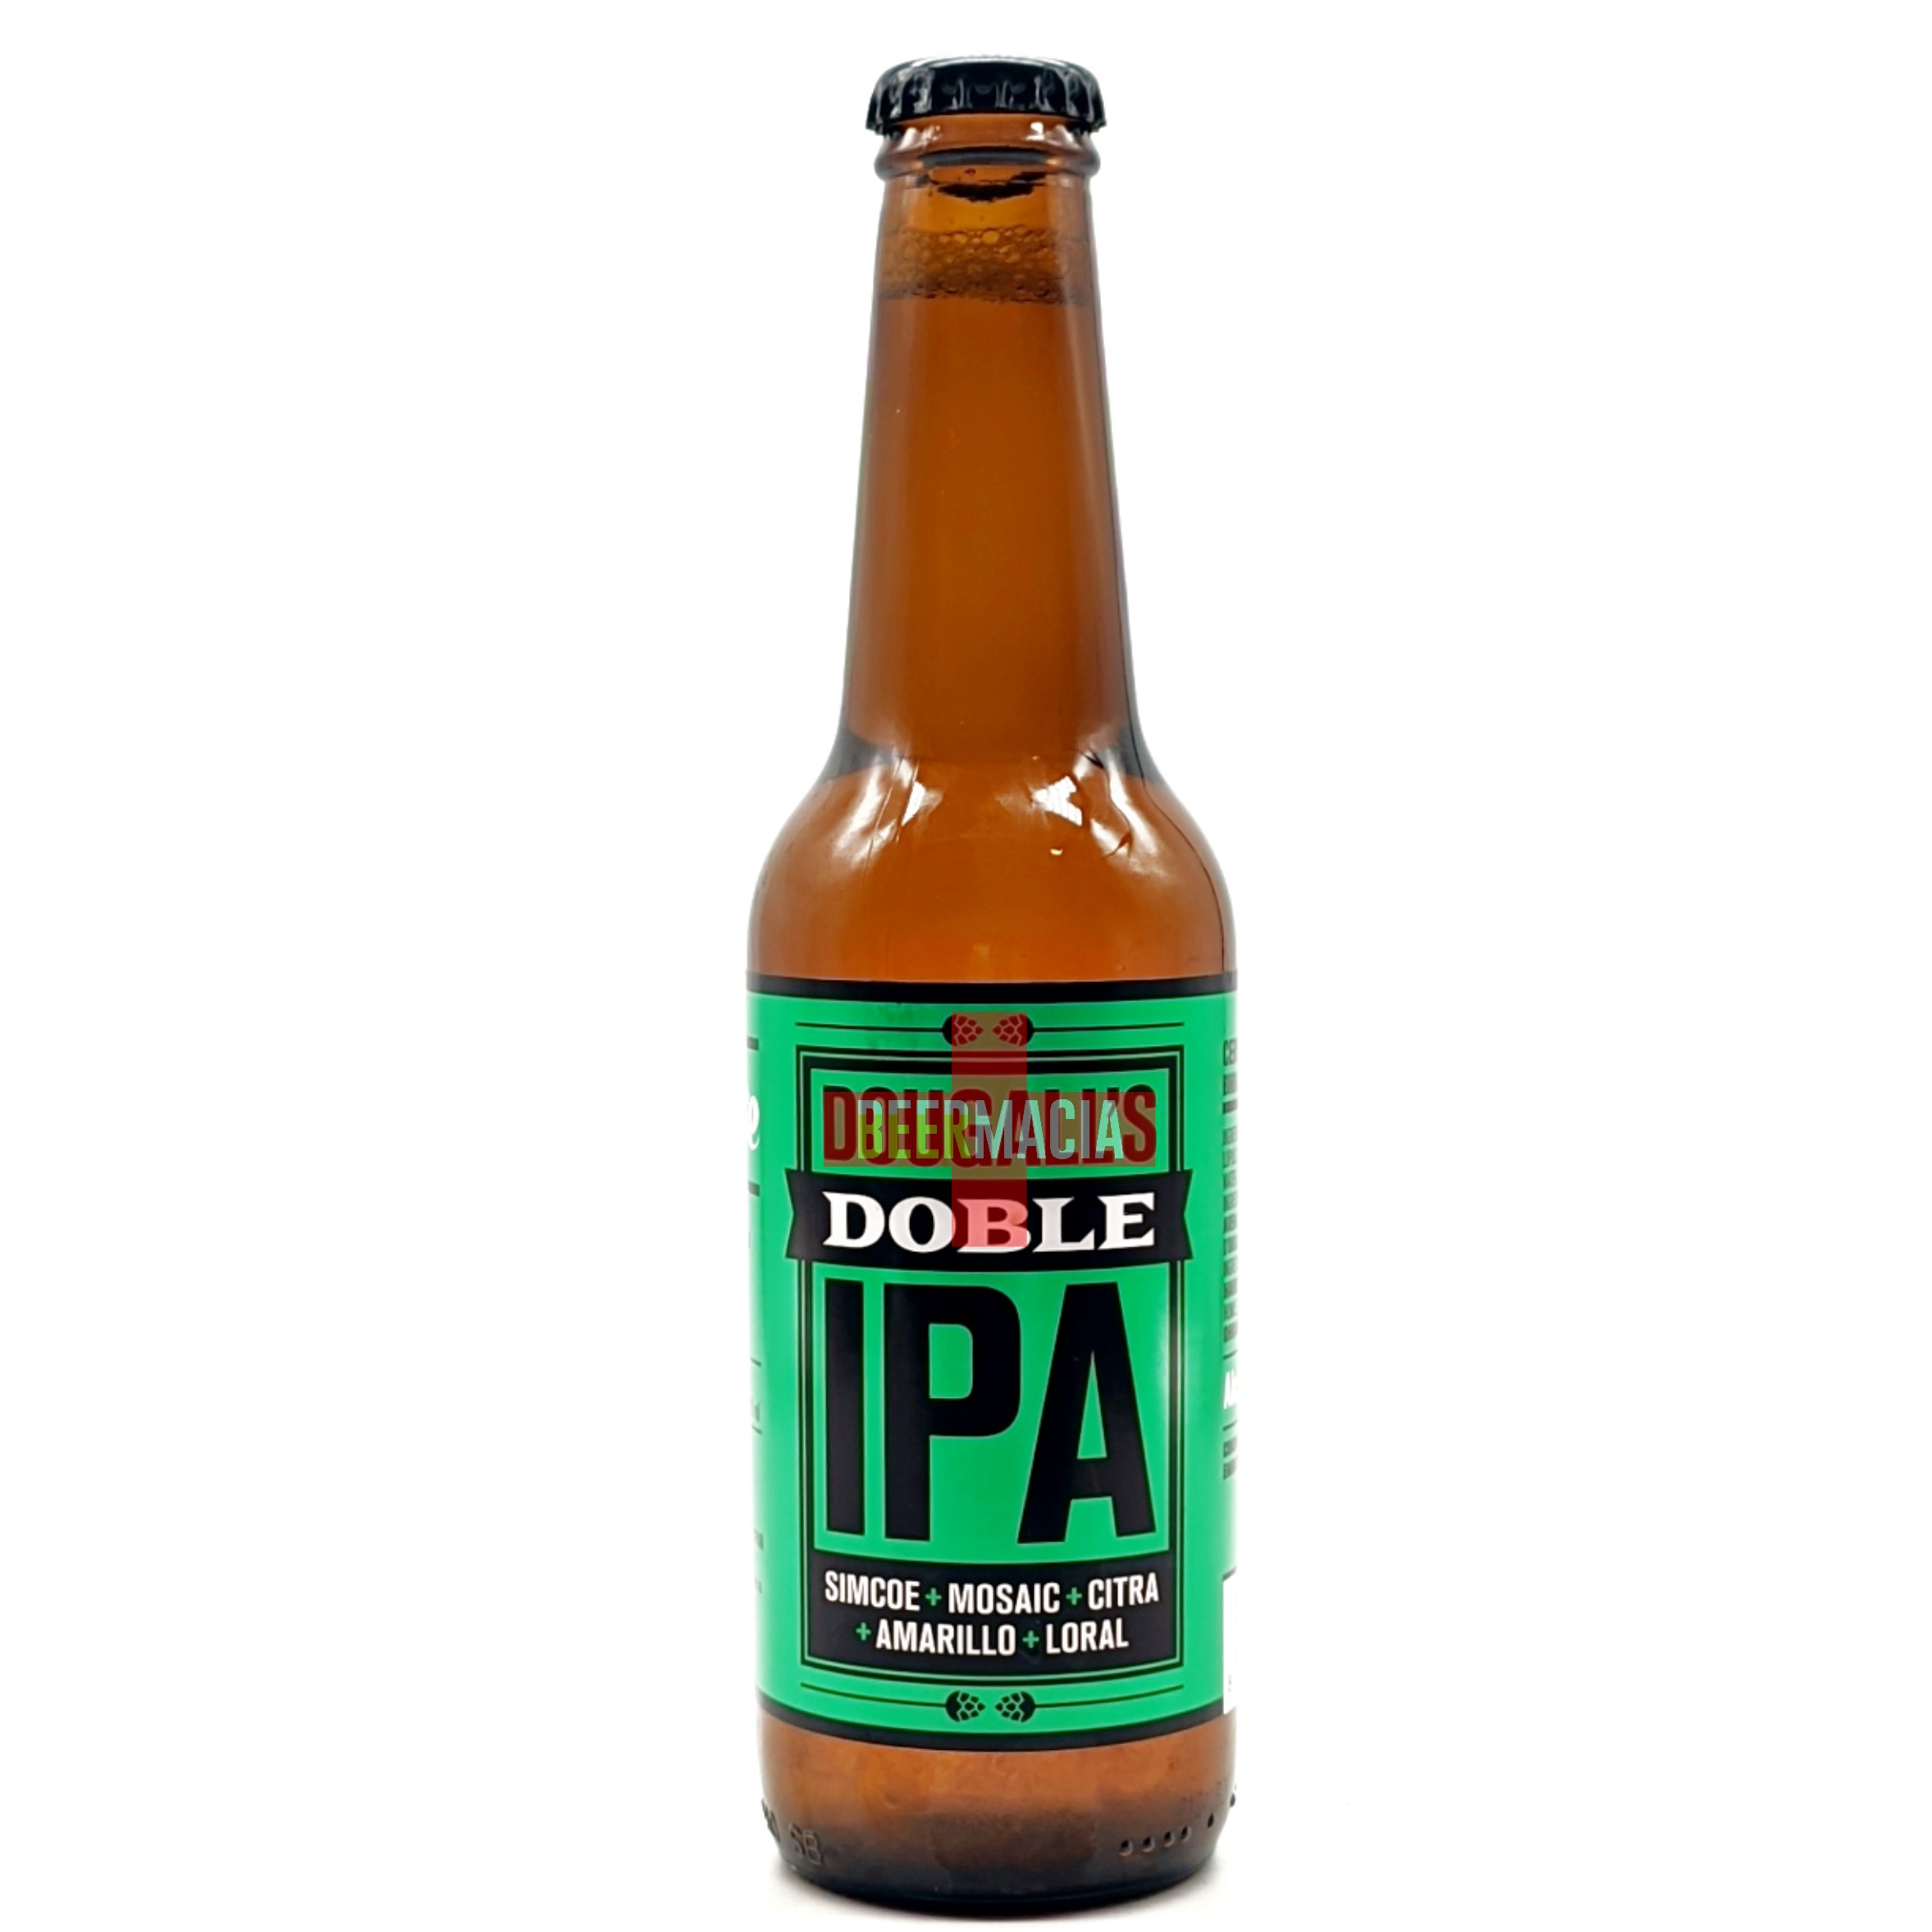 DouGall's - Doble IPA 33cl